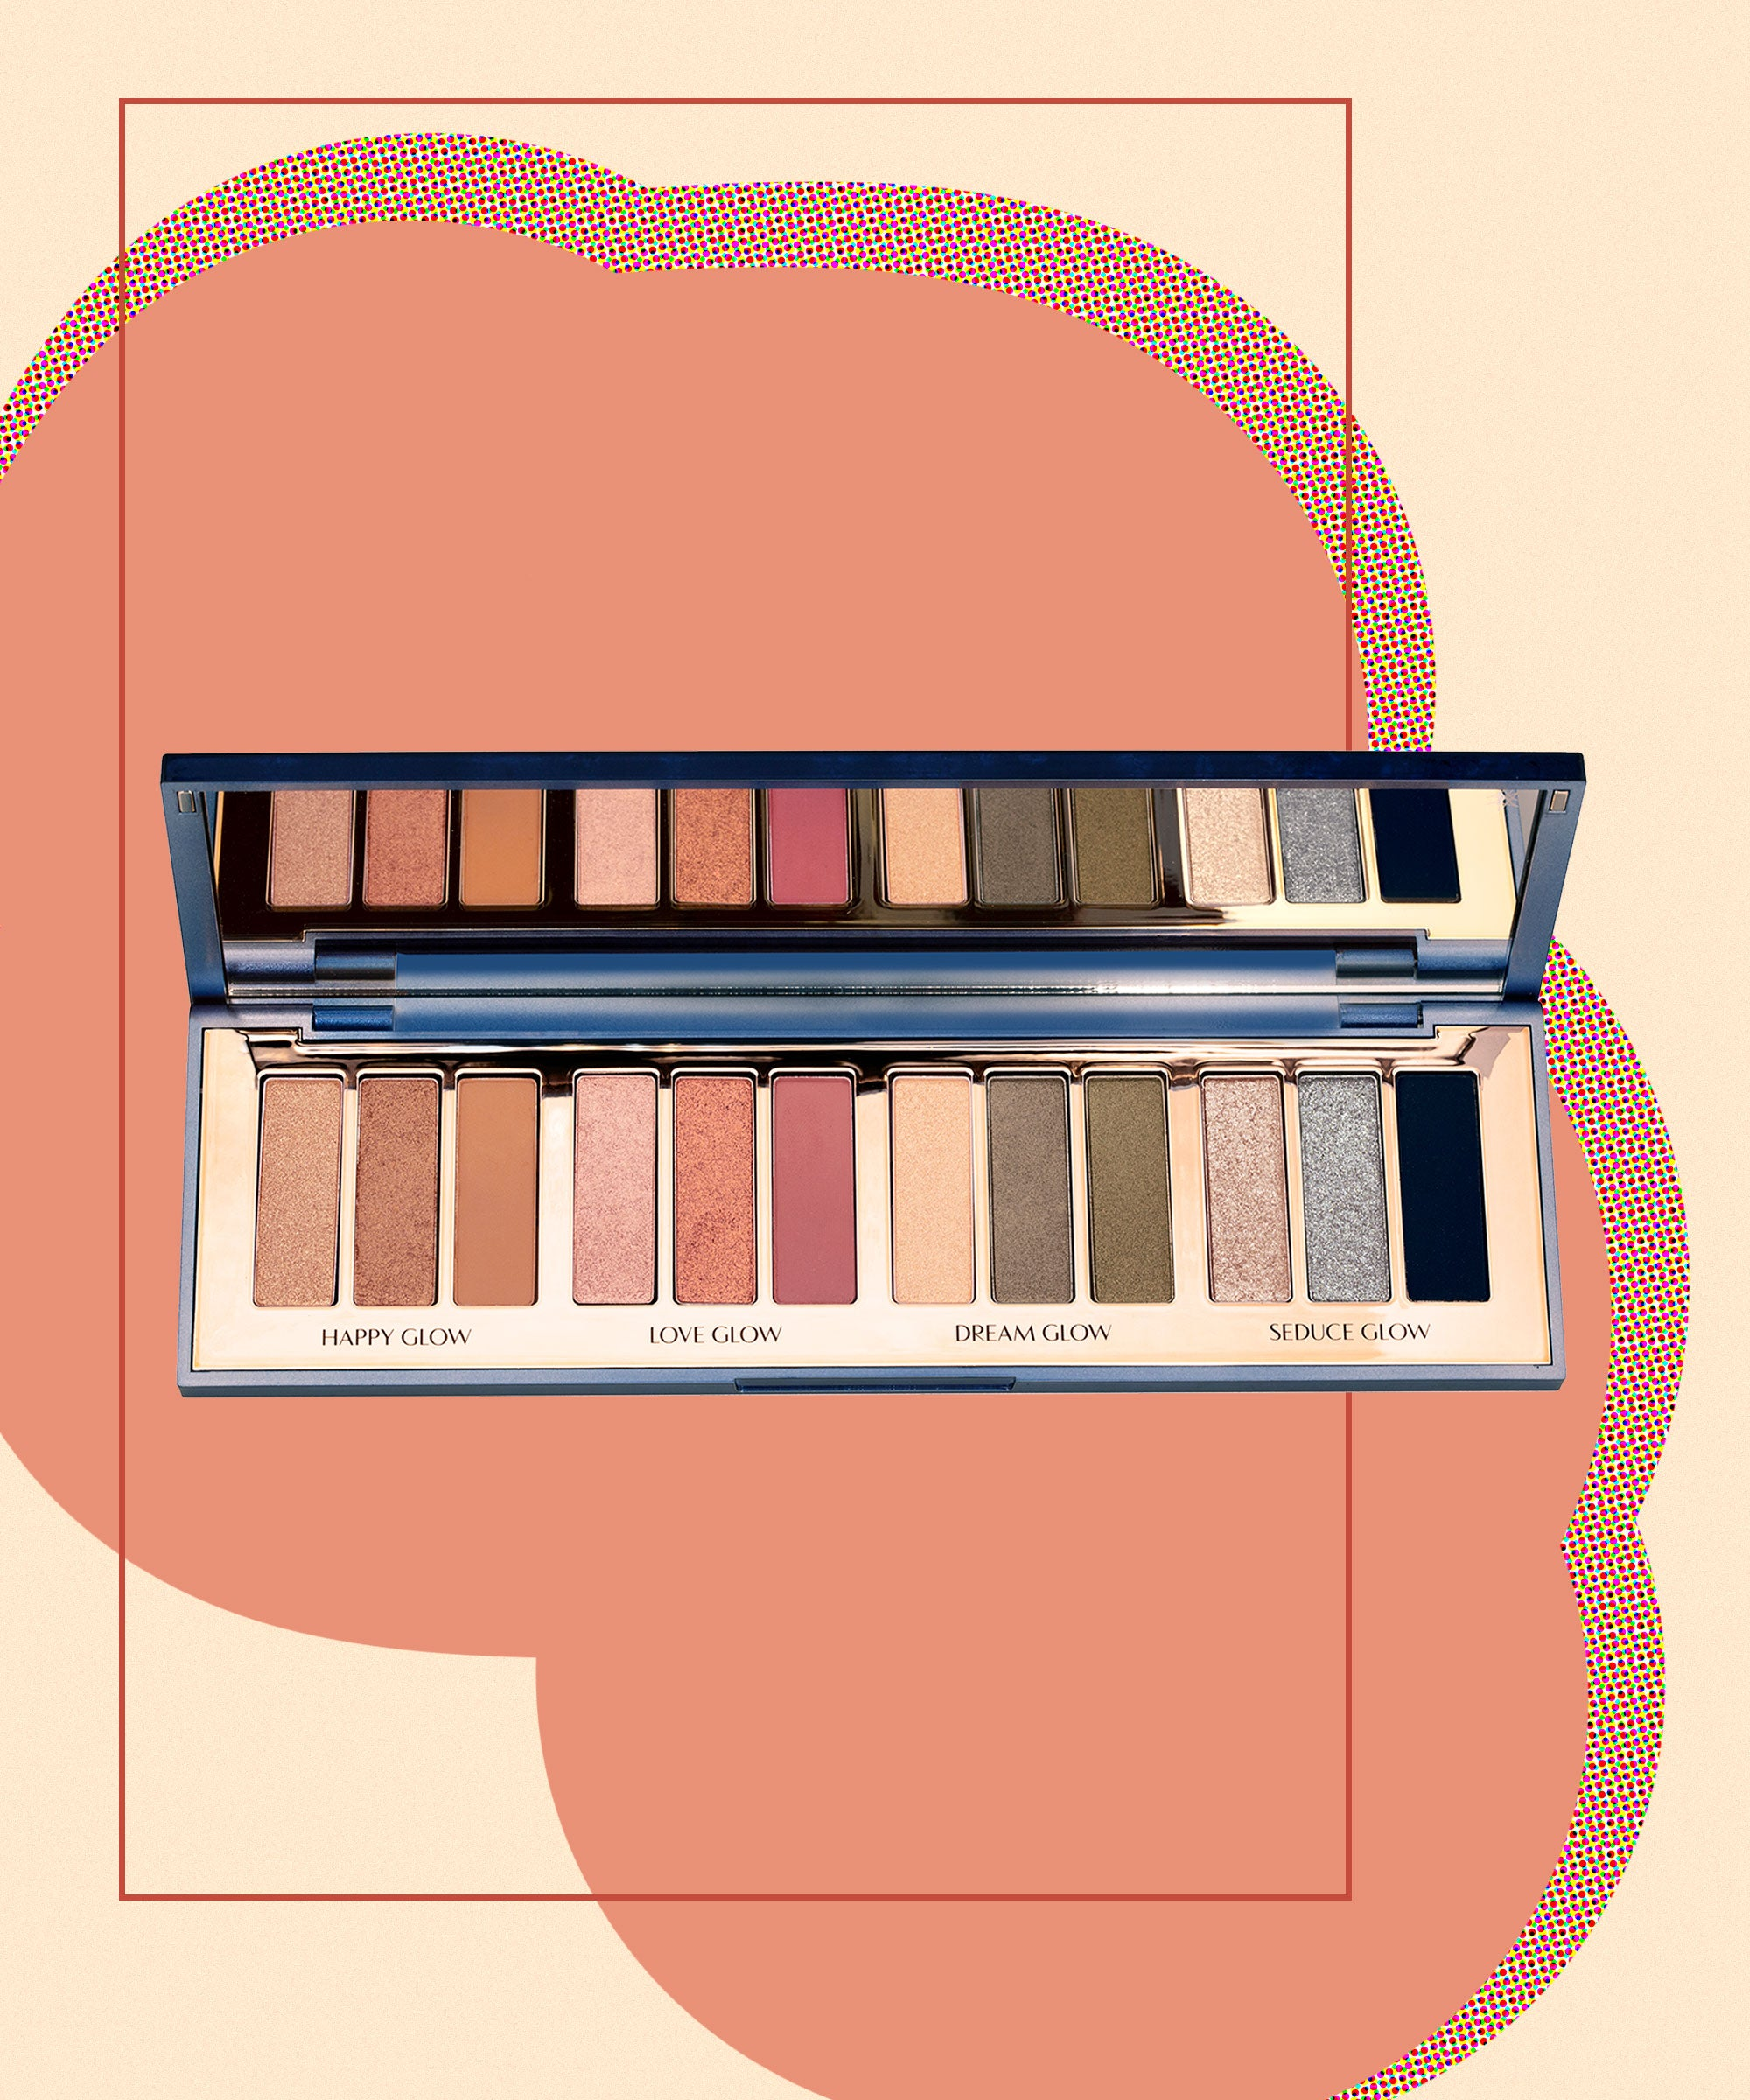 A New Charlotte Tilbury Palette Just Launched — For 24 Hours Only